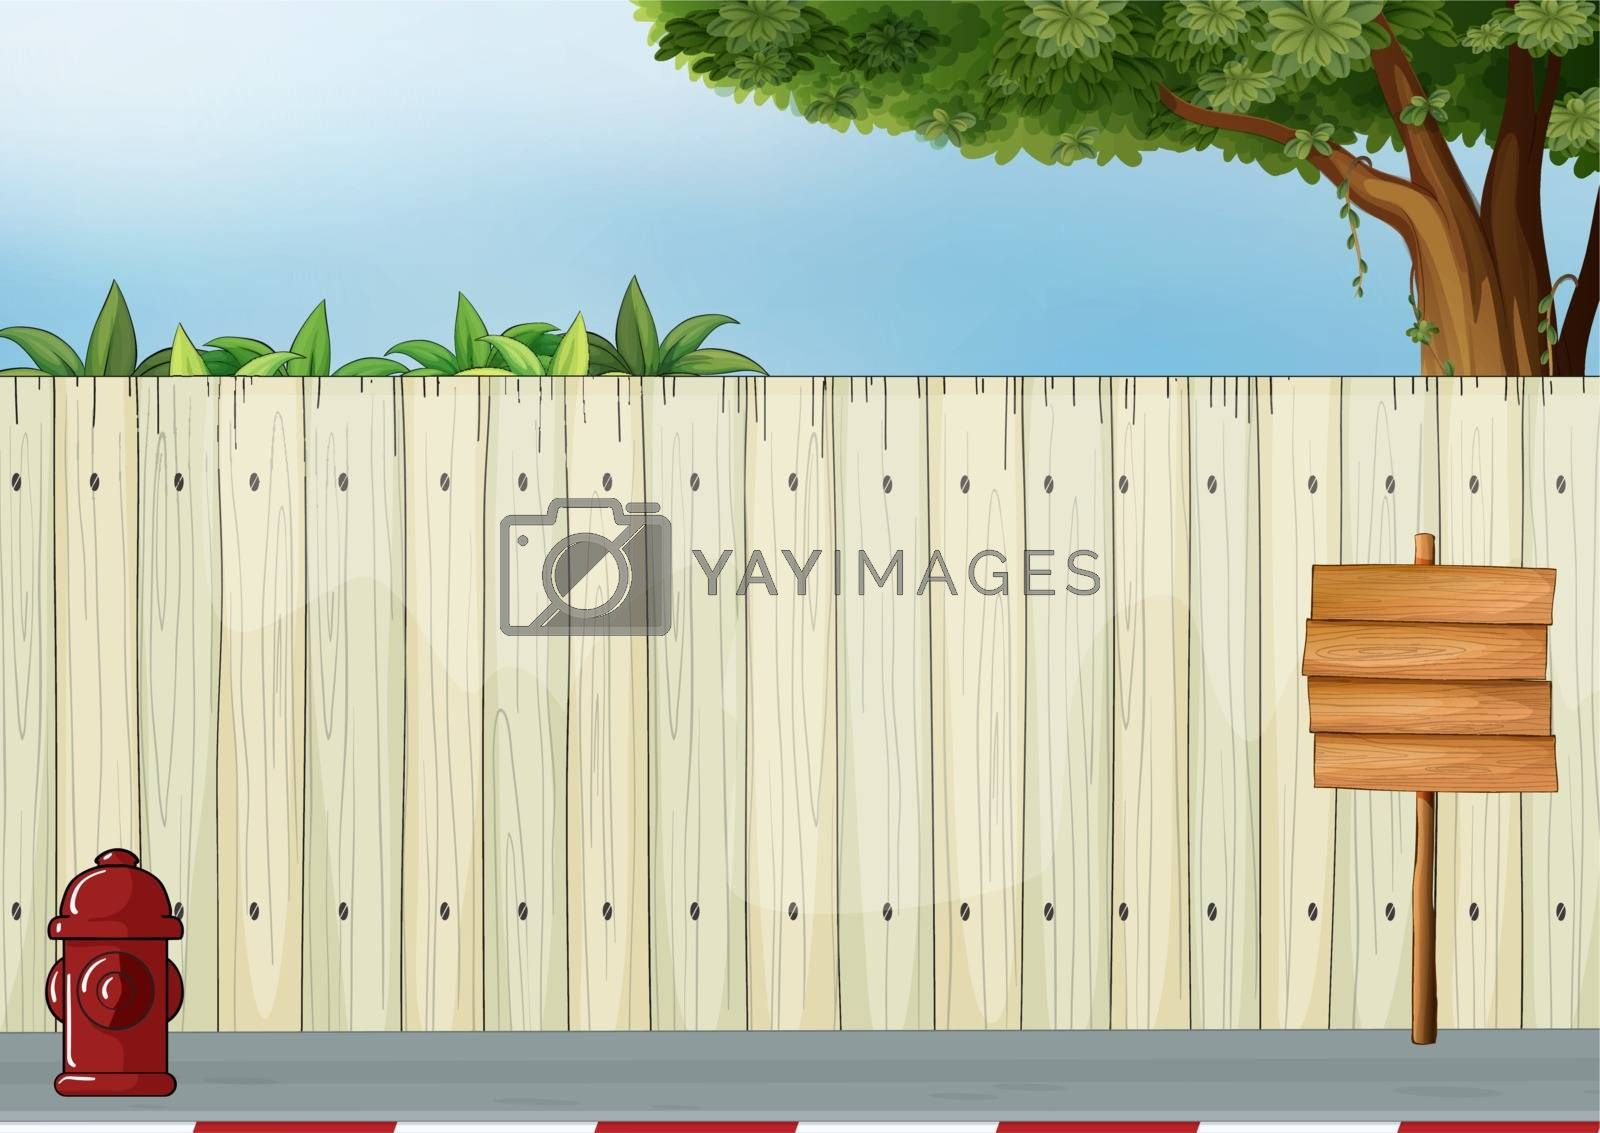 Illustration of a wooden signboard and the red hydrant